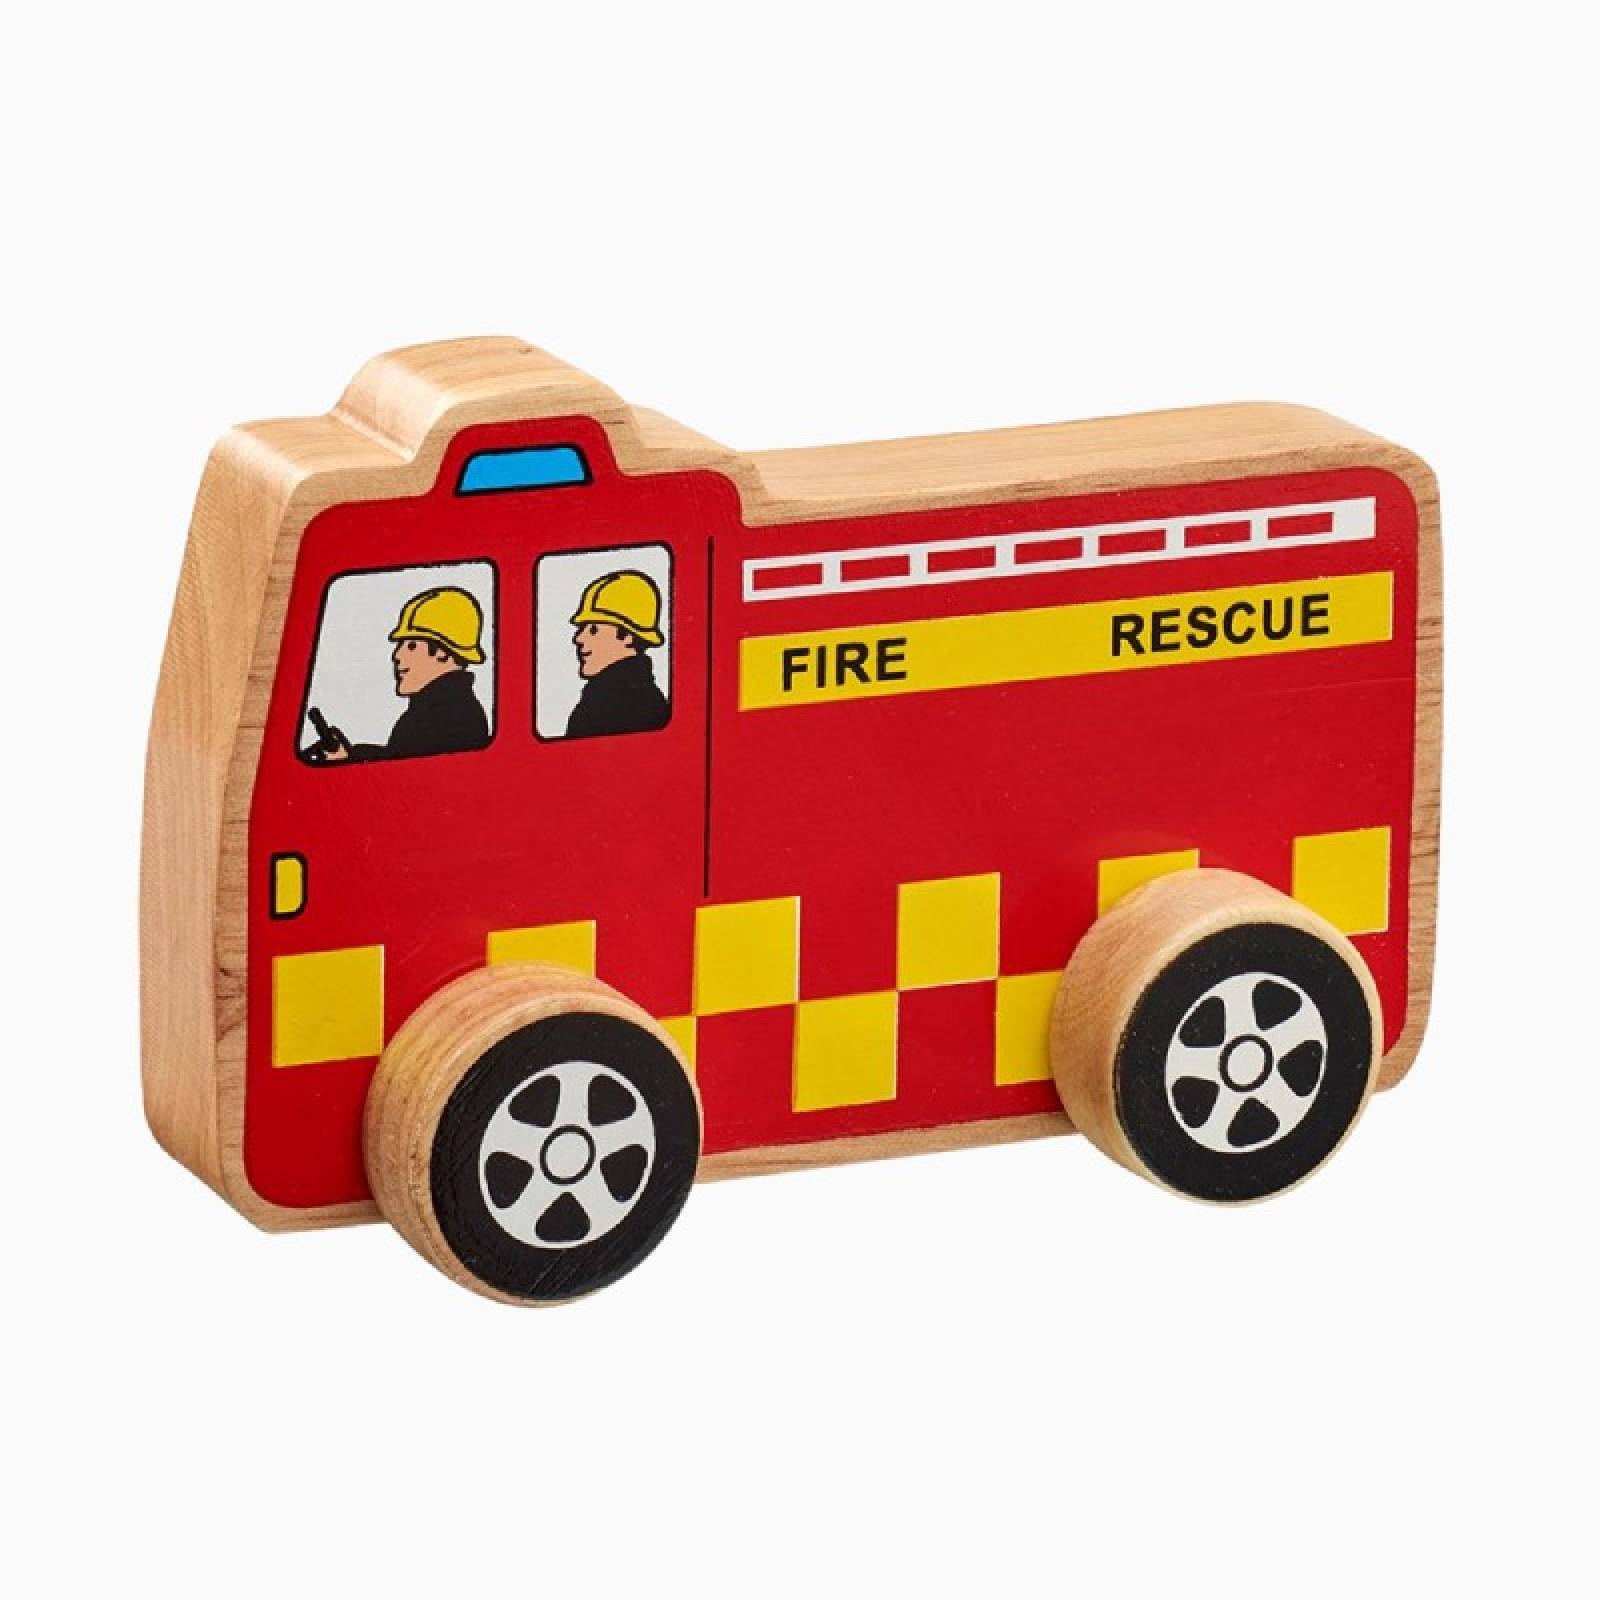 Little Wooden Fire Engine Made From Natural Wood By Lanka Kade